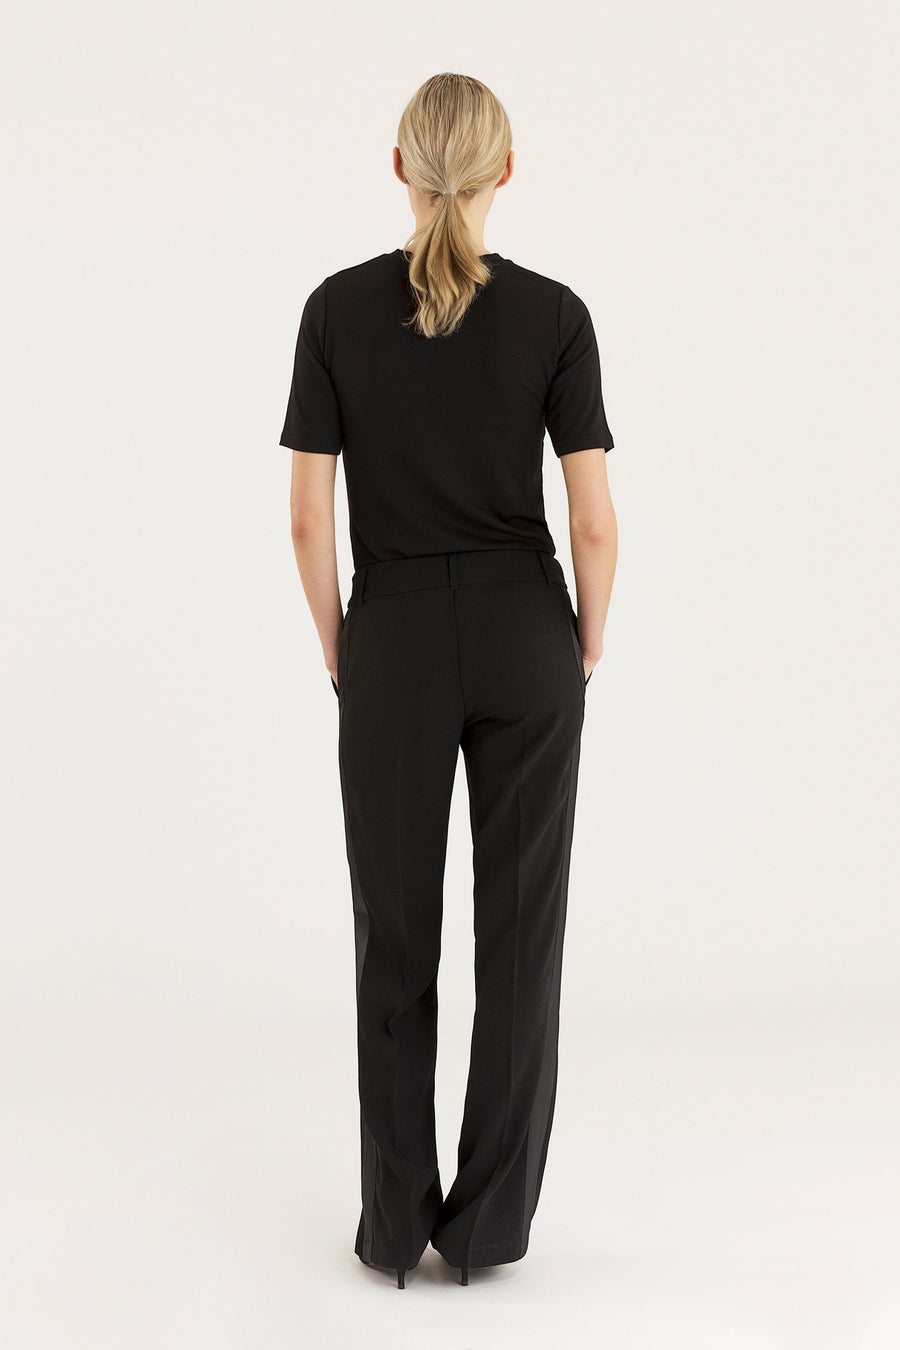 BELTON TROUSERS - BLACK Trousers Stylein